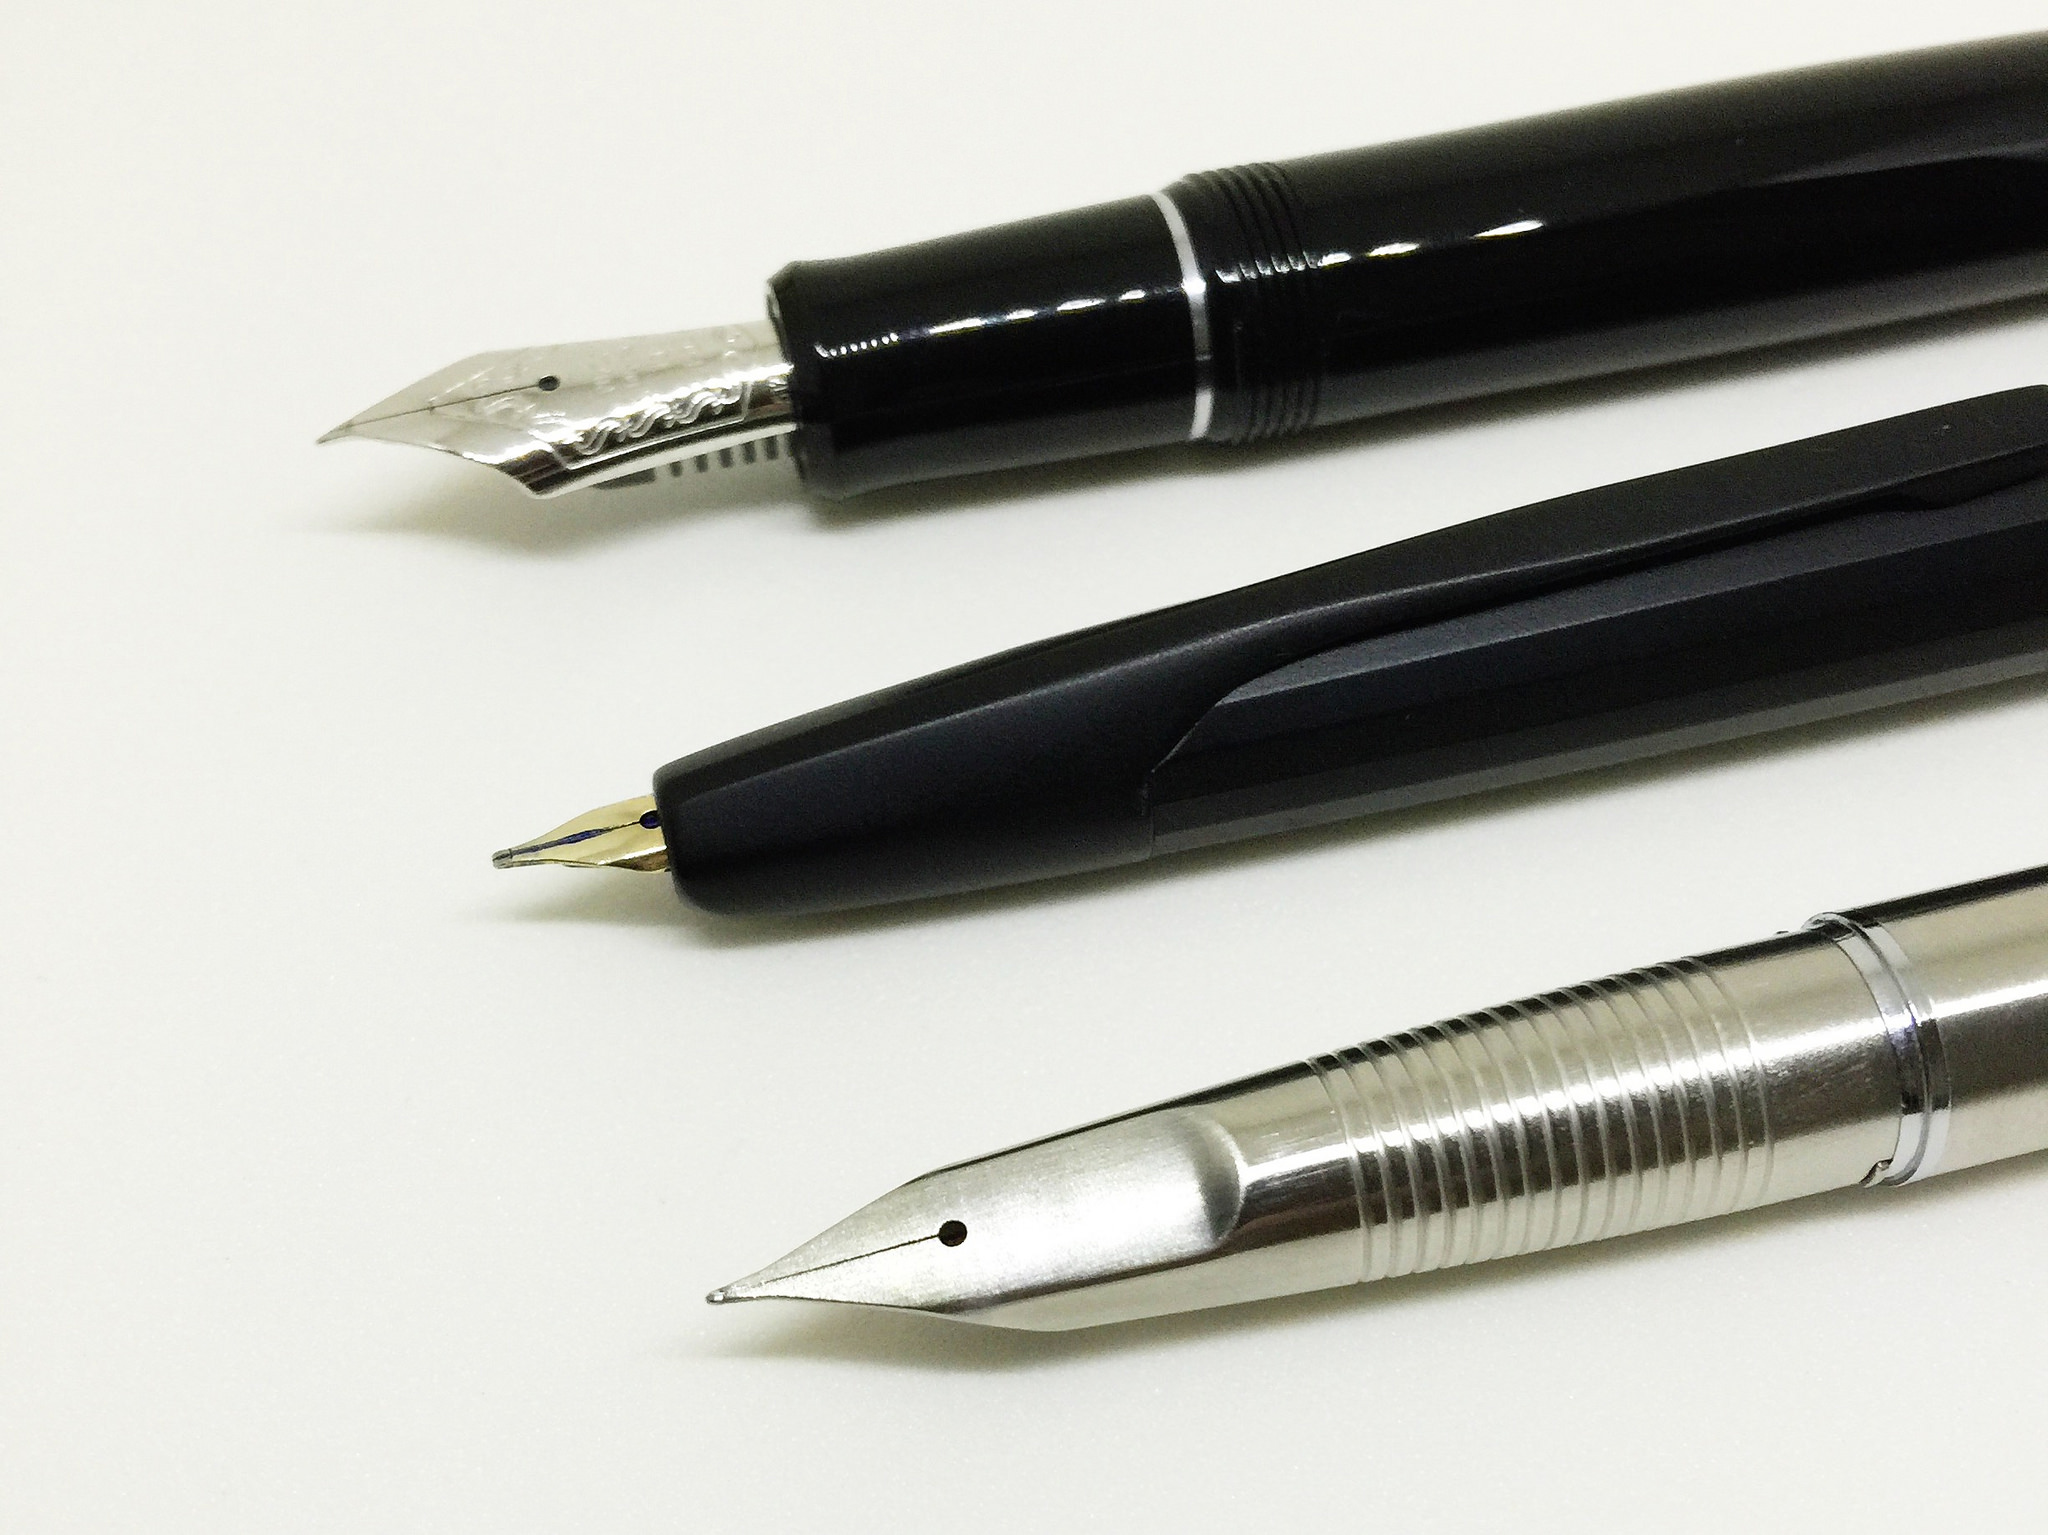 Unique nibs are a priorityin this list.